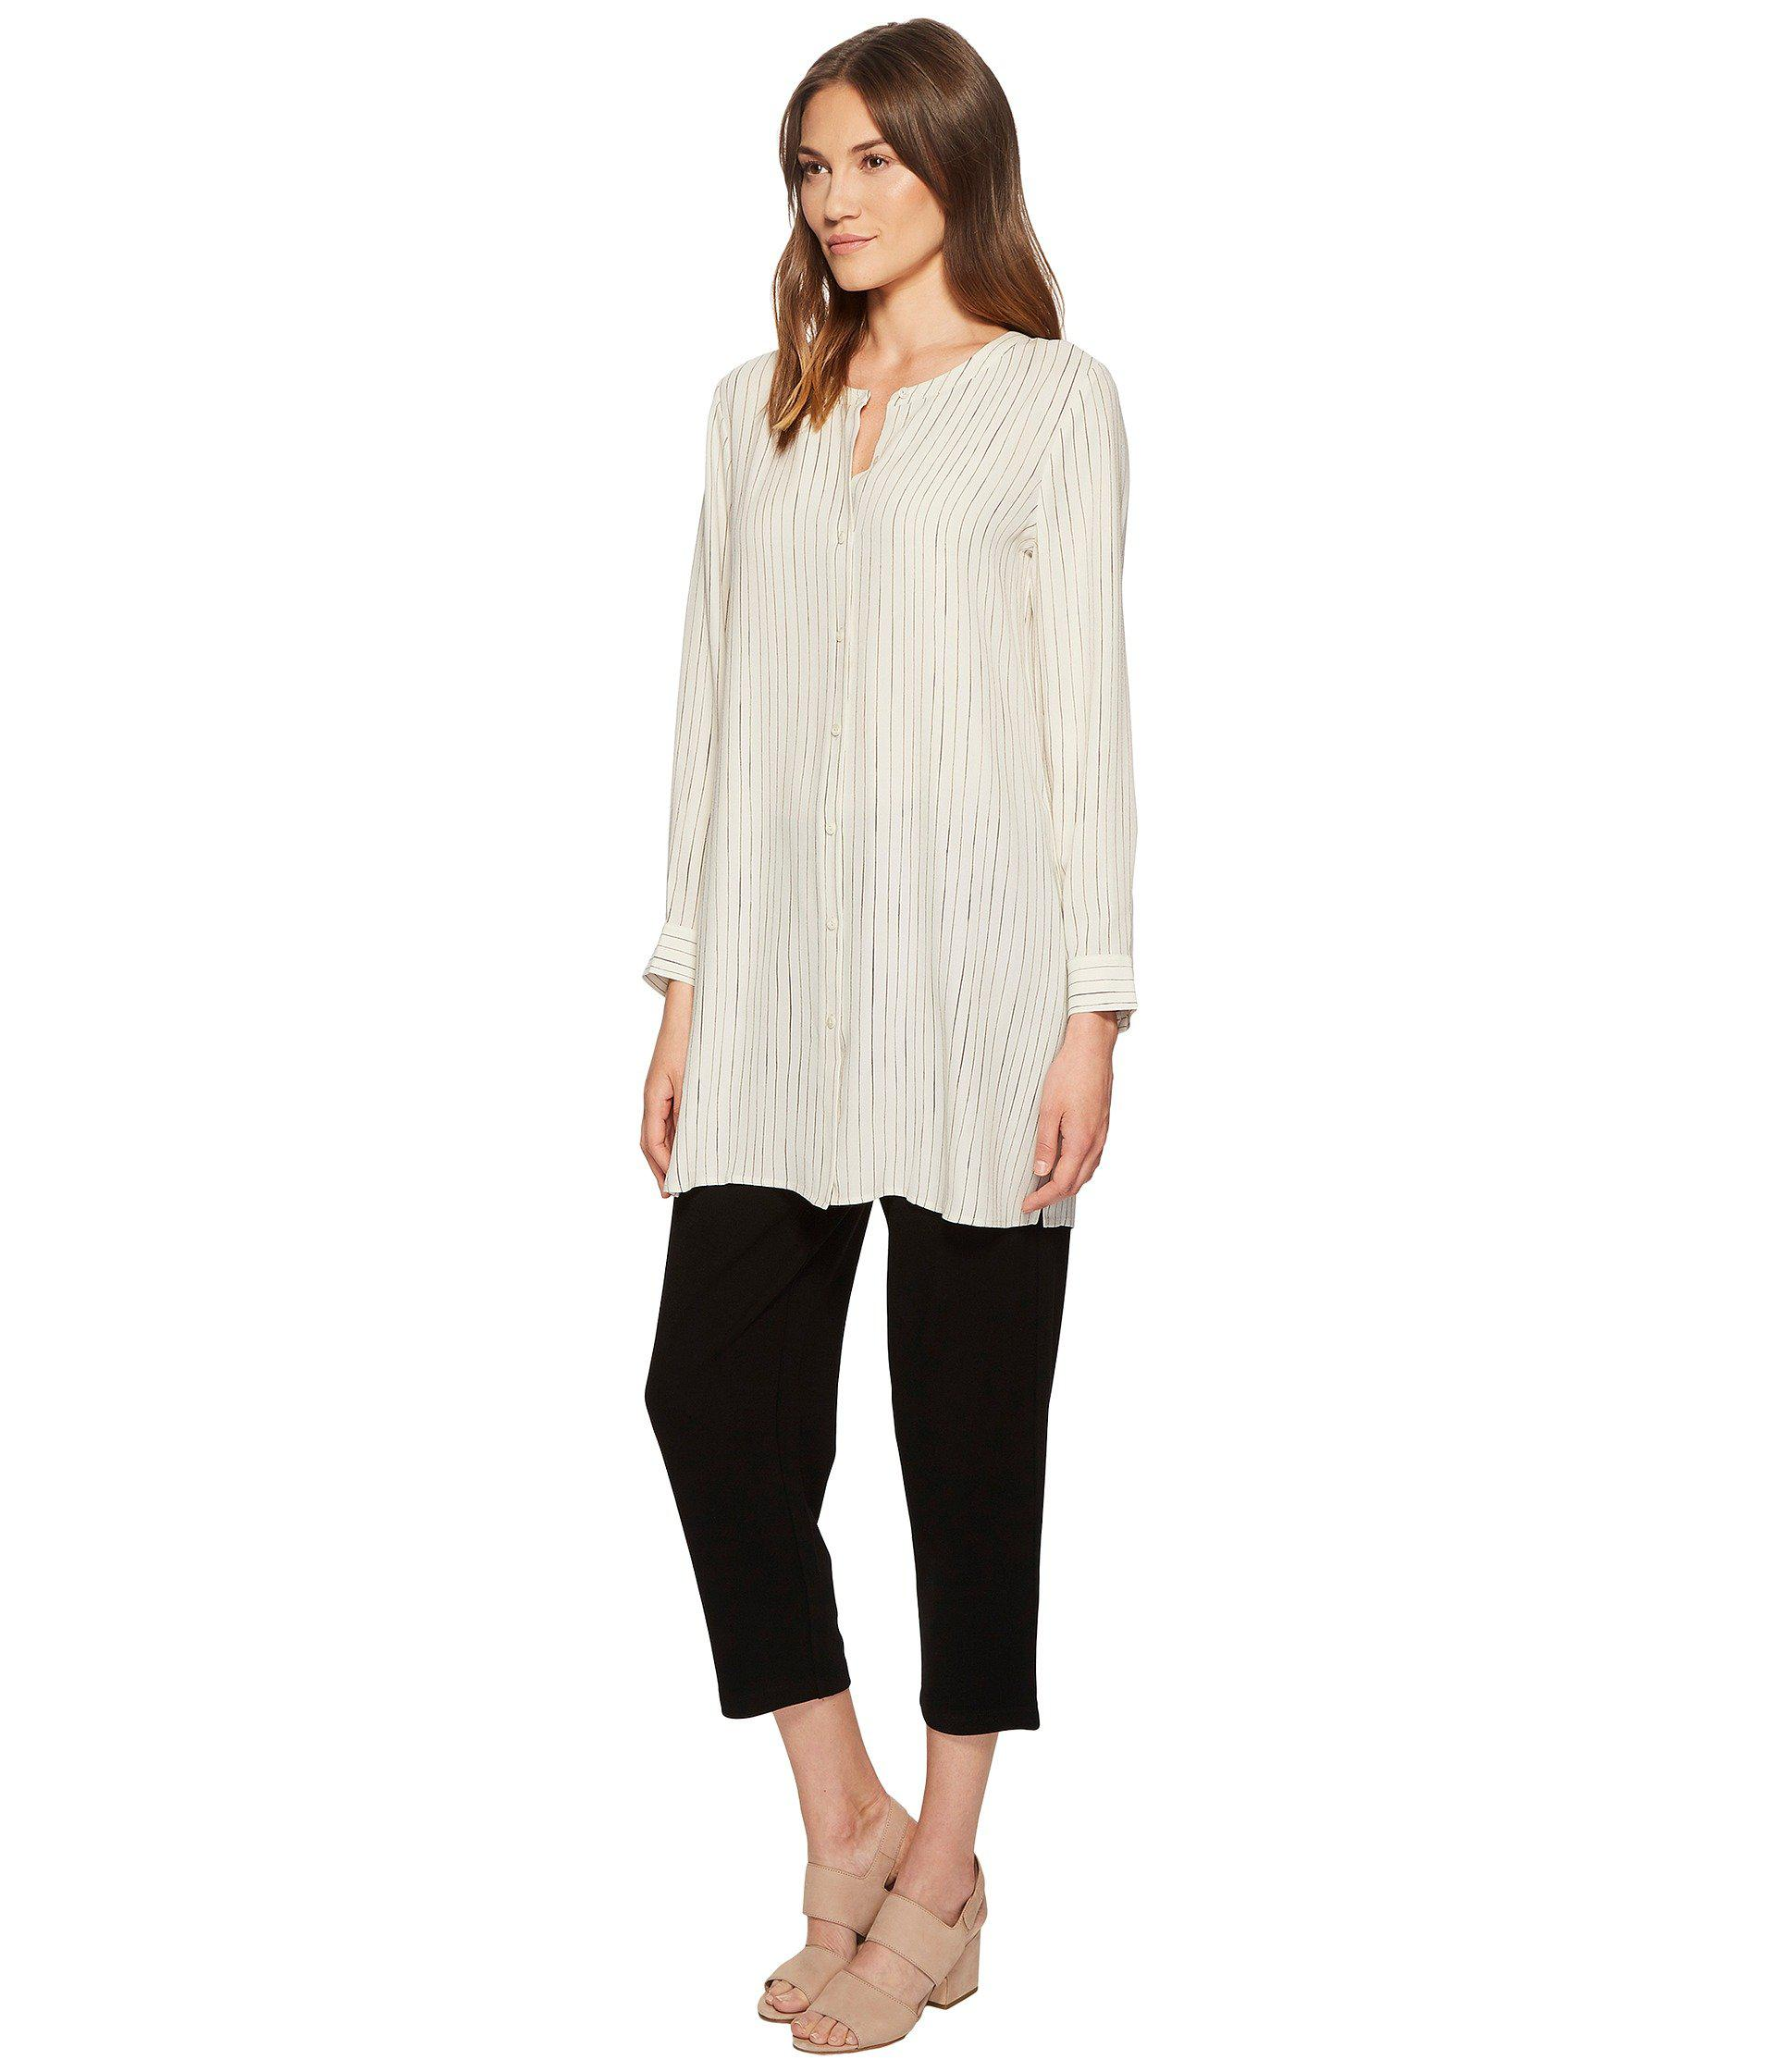 cf77e5ddaf Lyst - Eileen Fisher Painterly Stripe Silk Crepe Long Shirt in White - Save  53%